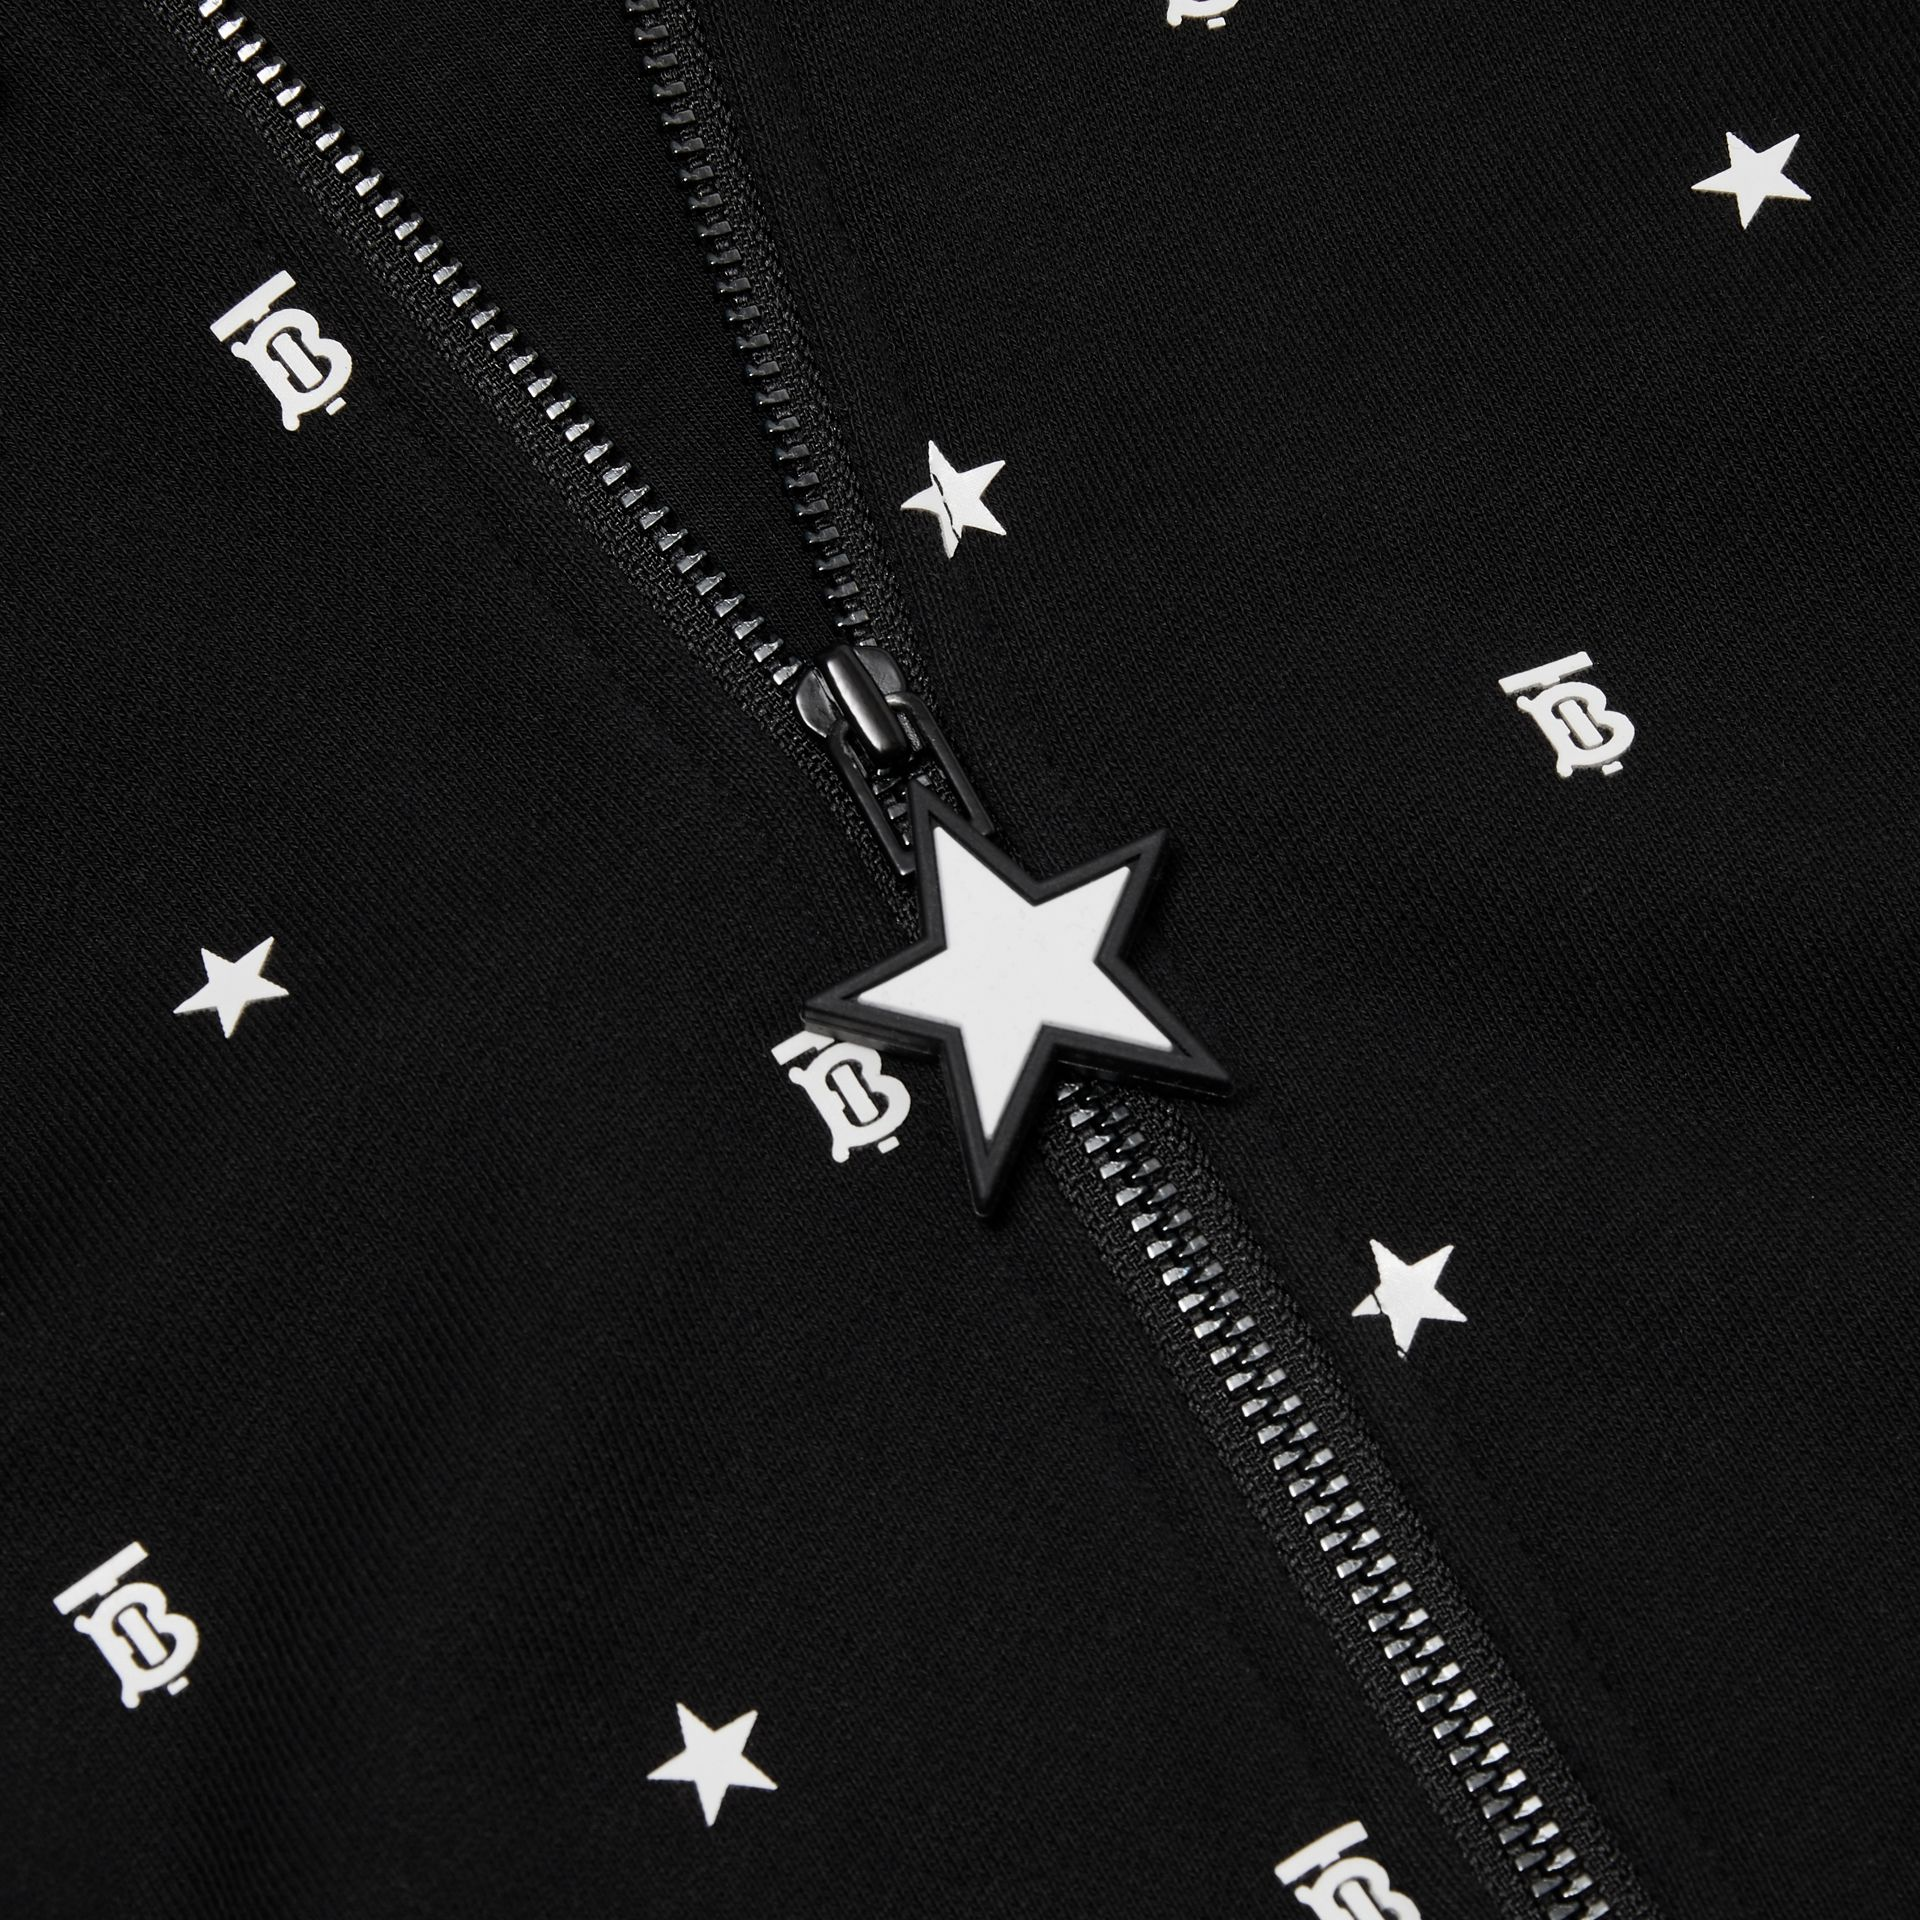 Star and Monogram Motif Cotton Hooded Top in Black - Children | Burberry - gallery image 1